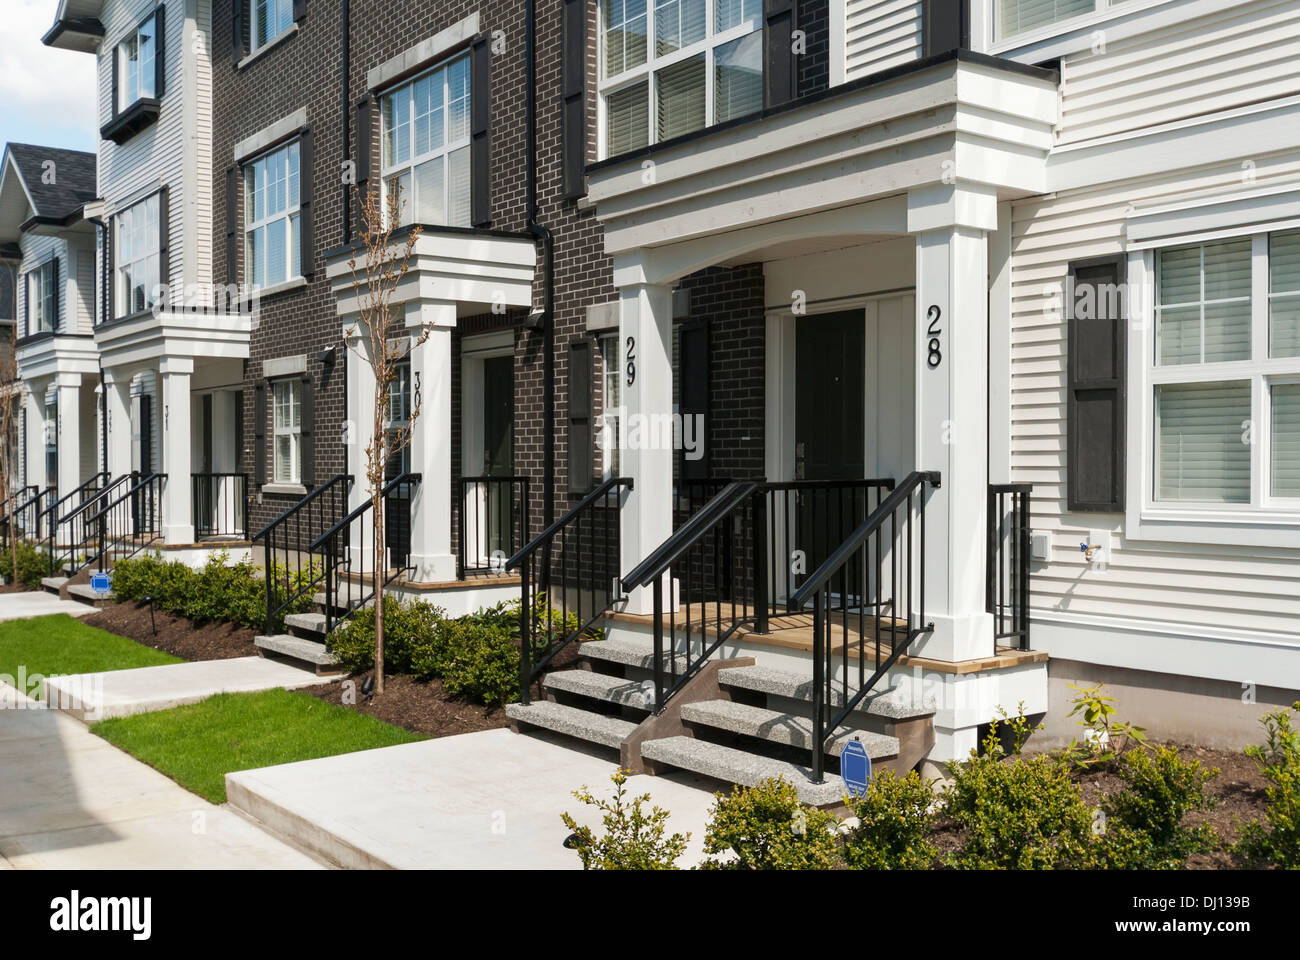 Modern Townhouse Row Exterior With Sidewalks And Porches; Surrey, British  Columbia, Canada